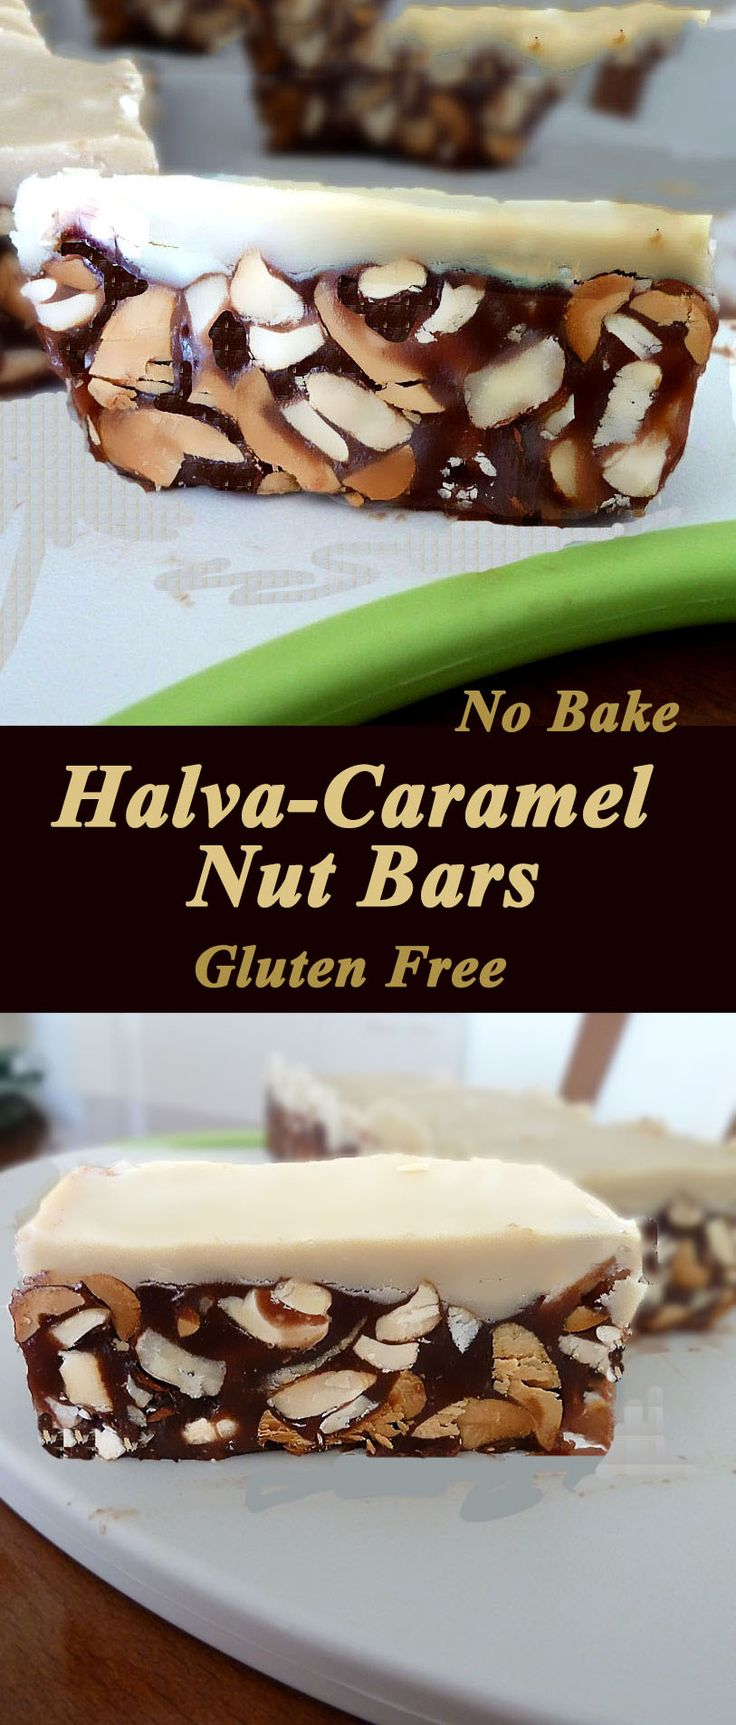 No-bake Halva-Caramel Nut Bars. So easy to make, and such a delightful treat. Gluten free